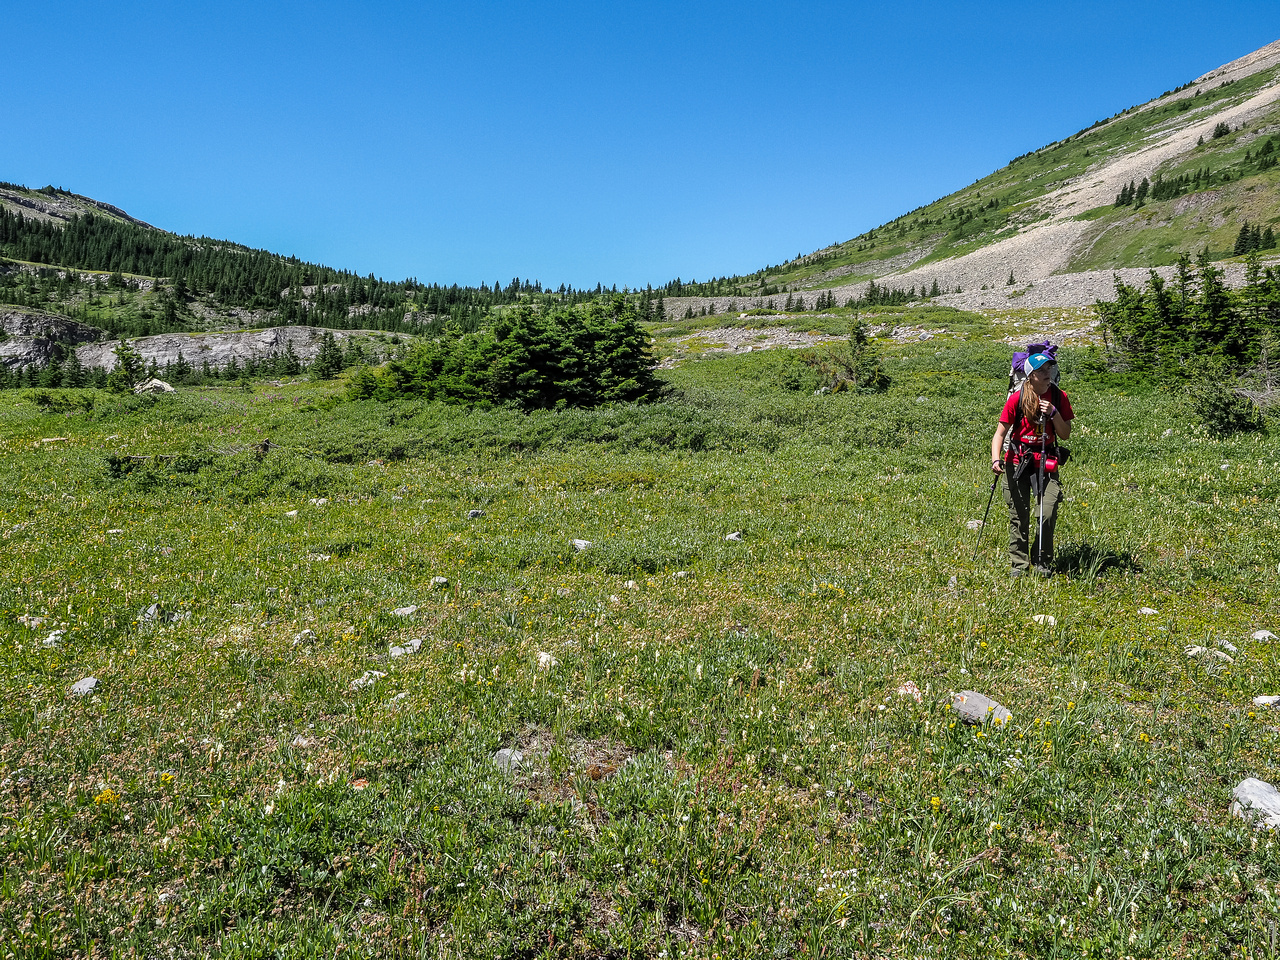 Strolling through the alpine meadows.